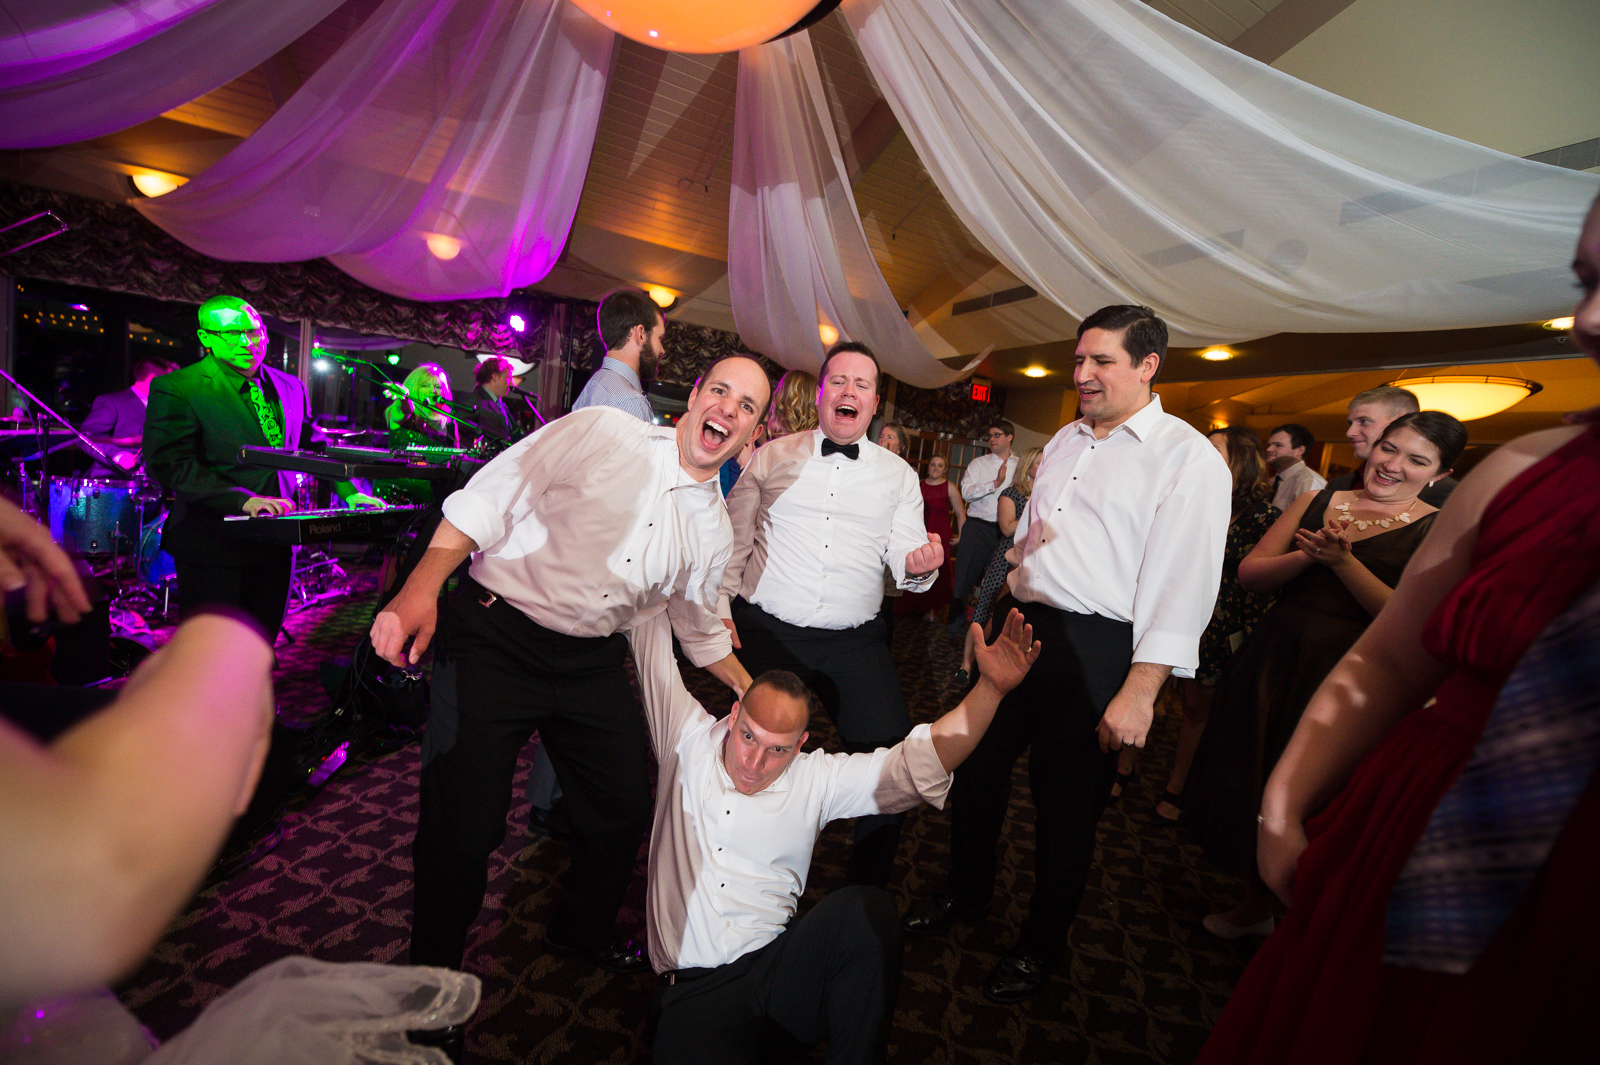 Scranton-clarks-summit-wedding-glen-oaks-contry-club-wedding-photographer-steven-serge-117.jpg